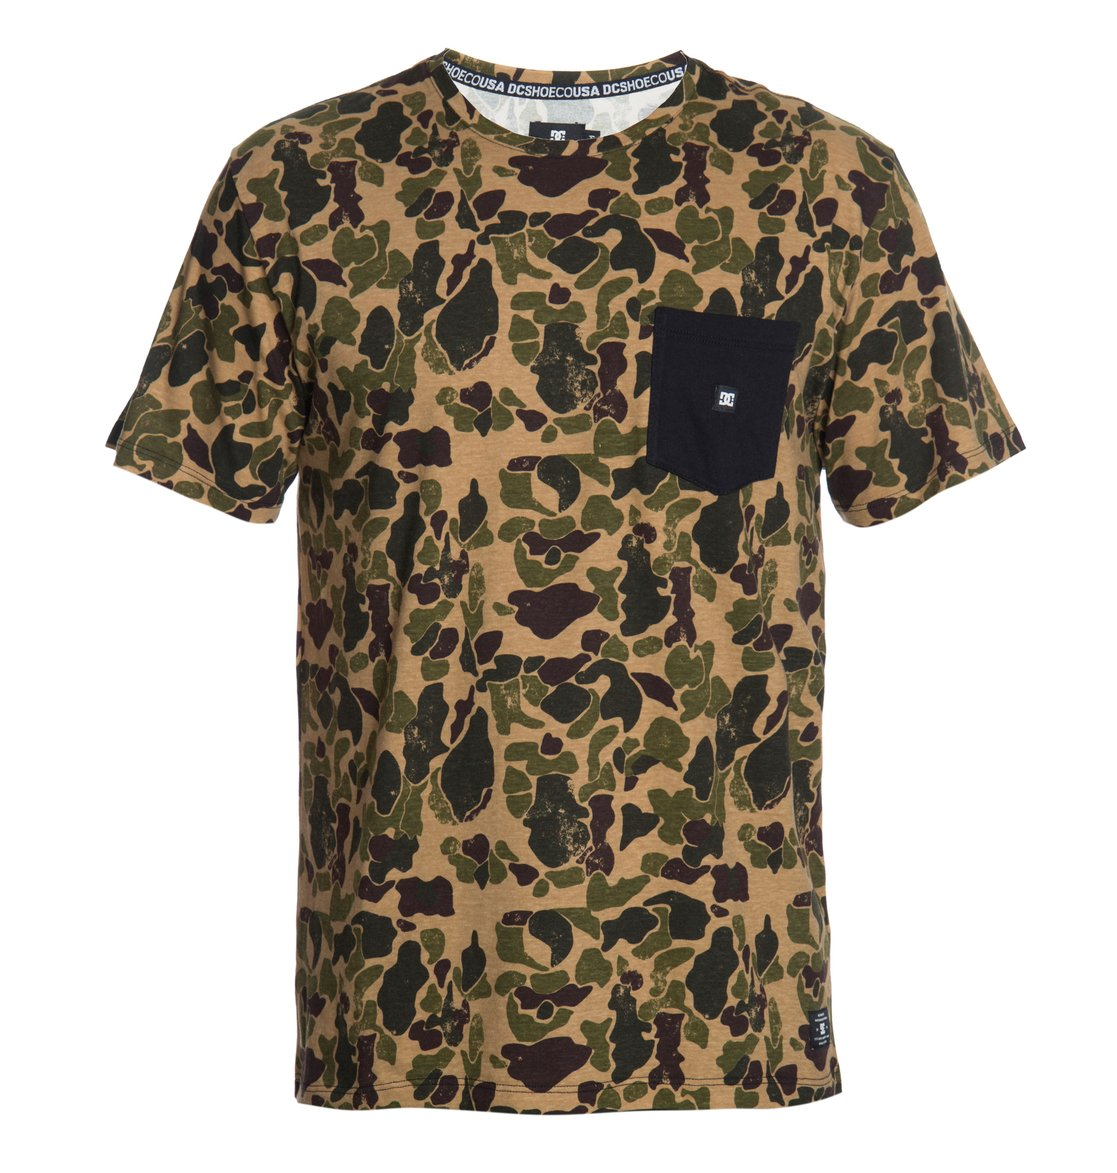 501714f29ac 0 Camiseta Masculina Manga Curta Estampada com Bolso DC Shoes BR61142703 DC  Shoes